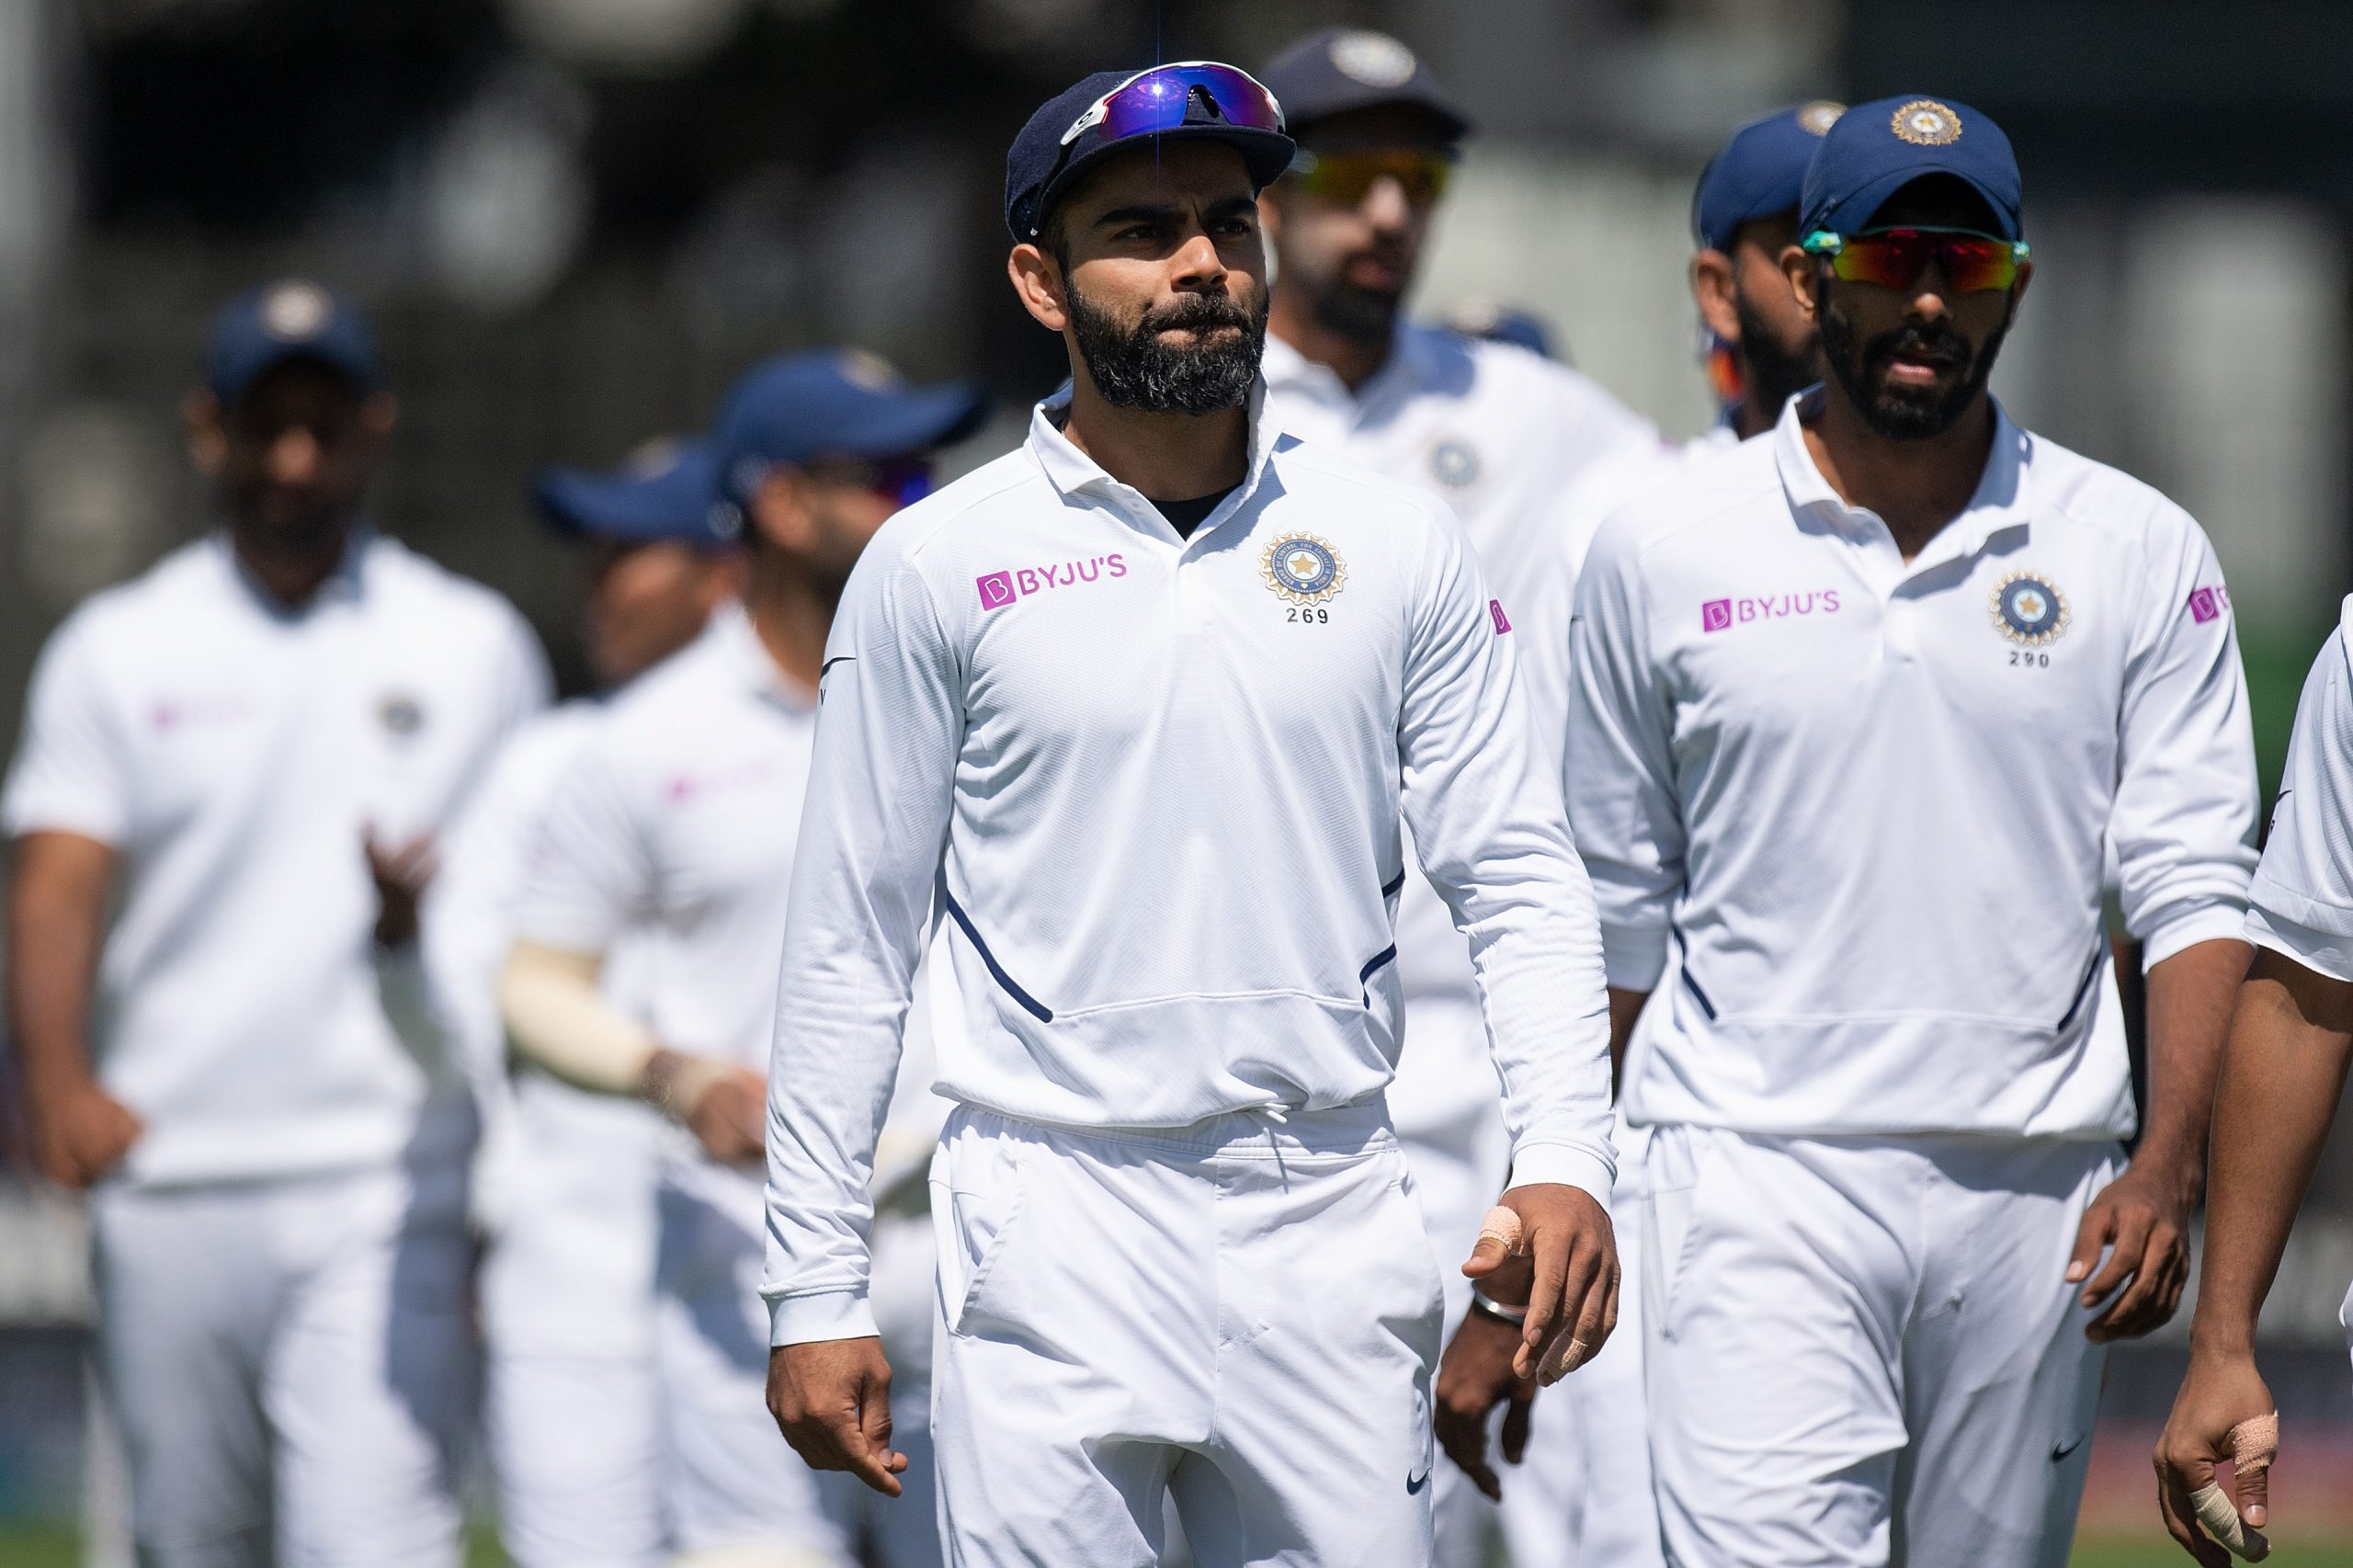 India's captain Virat Kohli (C) walks from the field with his team after losing the match to New Zealand during day four of the first Test cricket match between New Zealand and India at the Basin Reserve in Wellington on February 24, 2020. (Photo by Marty MELVILLE / AFP) (Photo by MARTY MELVILLE/AFP via Getty Images)